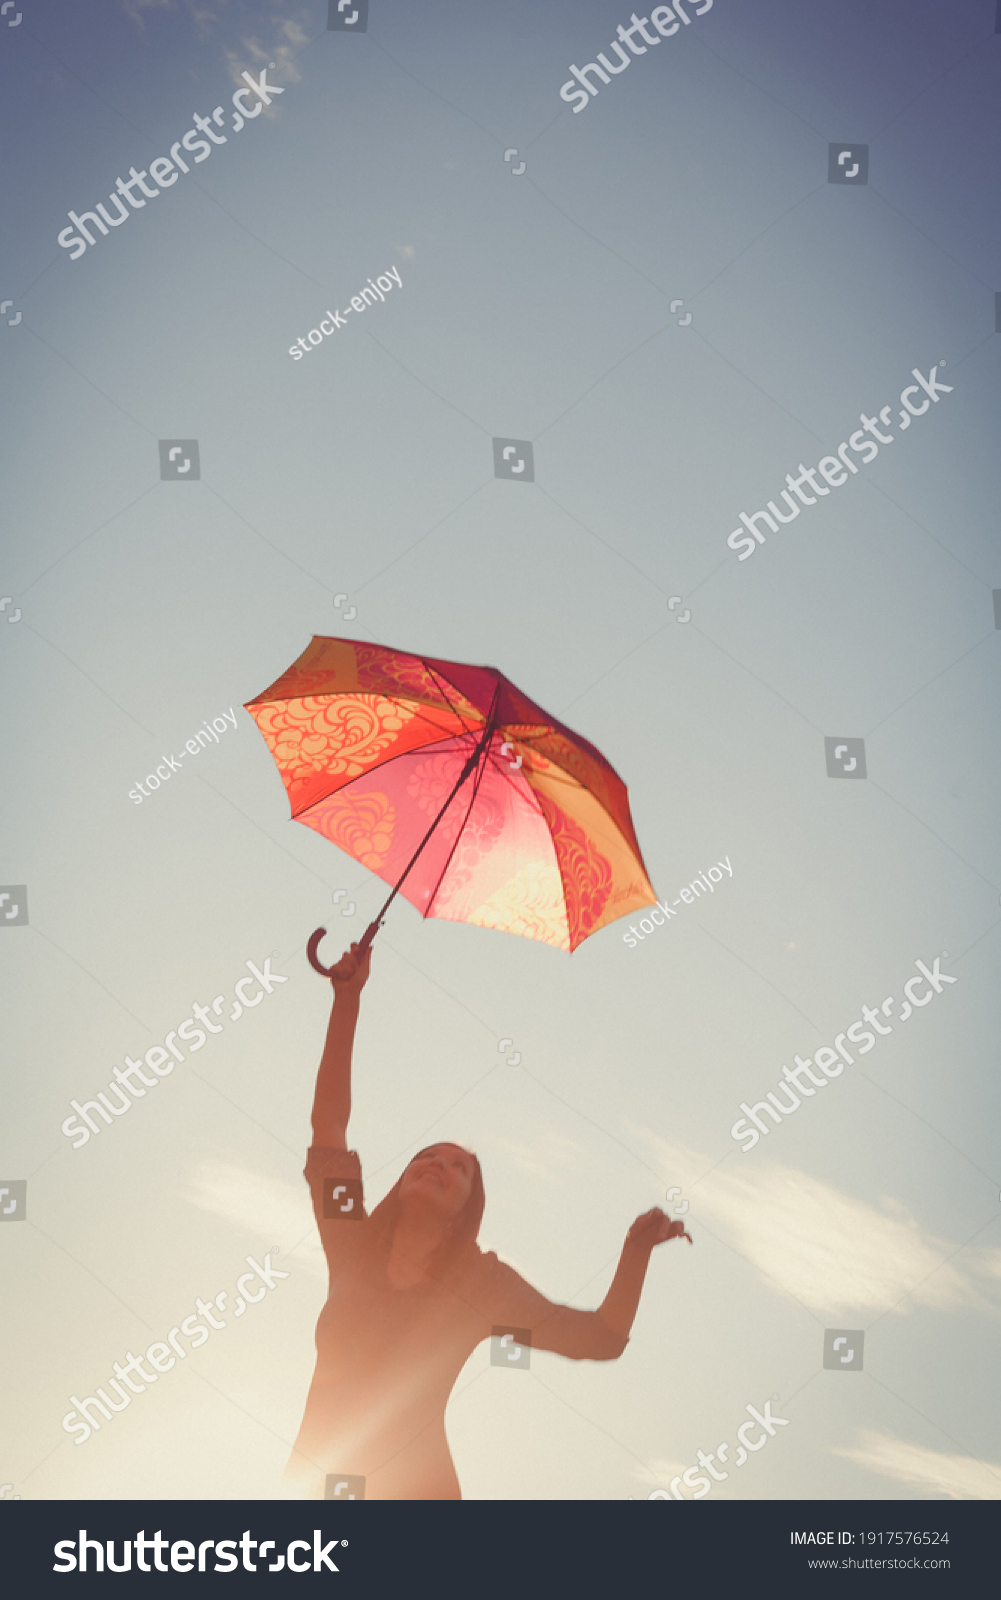 stock-photo-the-girl-dances-with-an-umbr